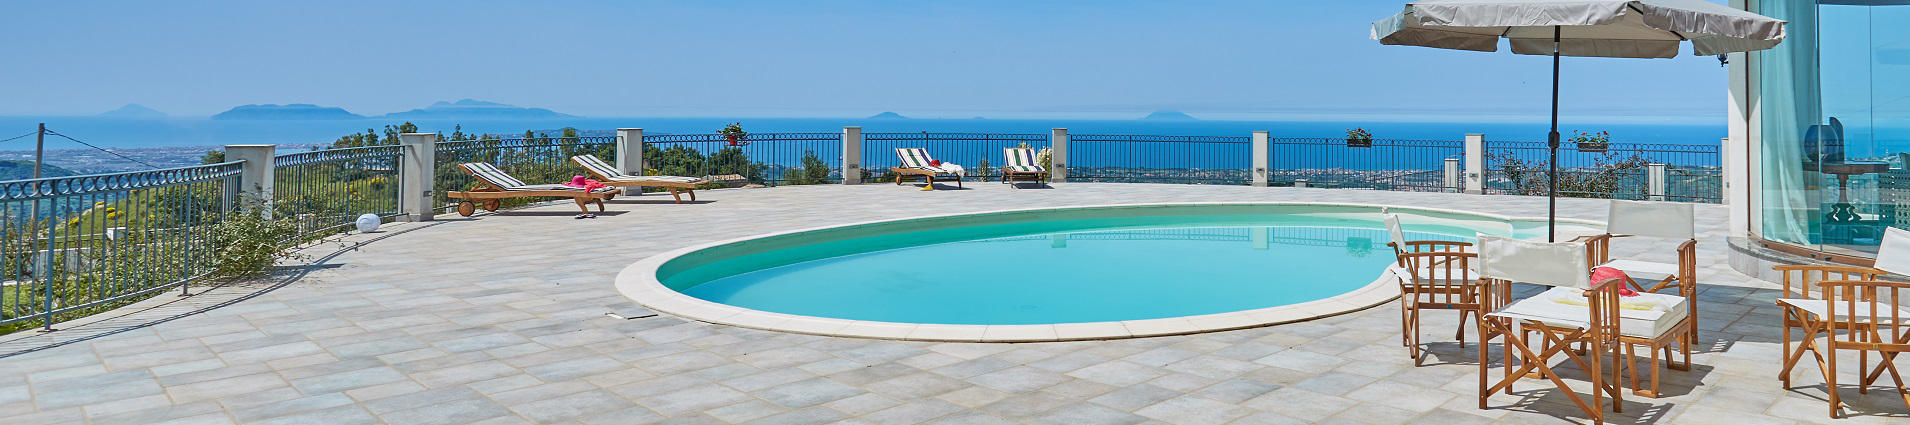 Self catering in Sicily